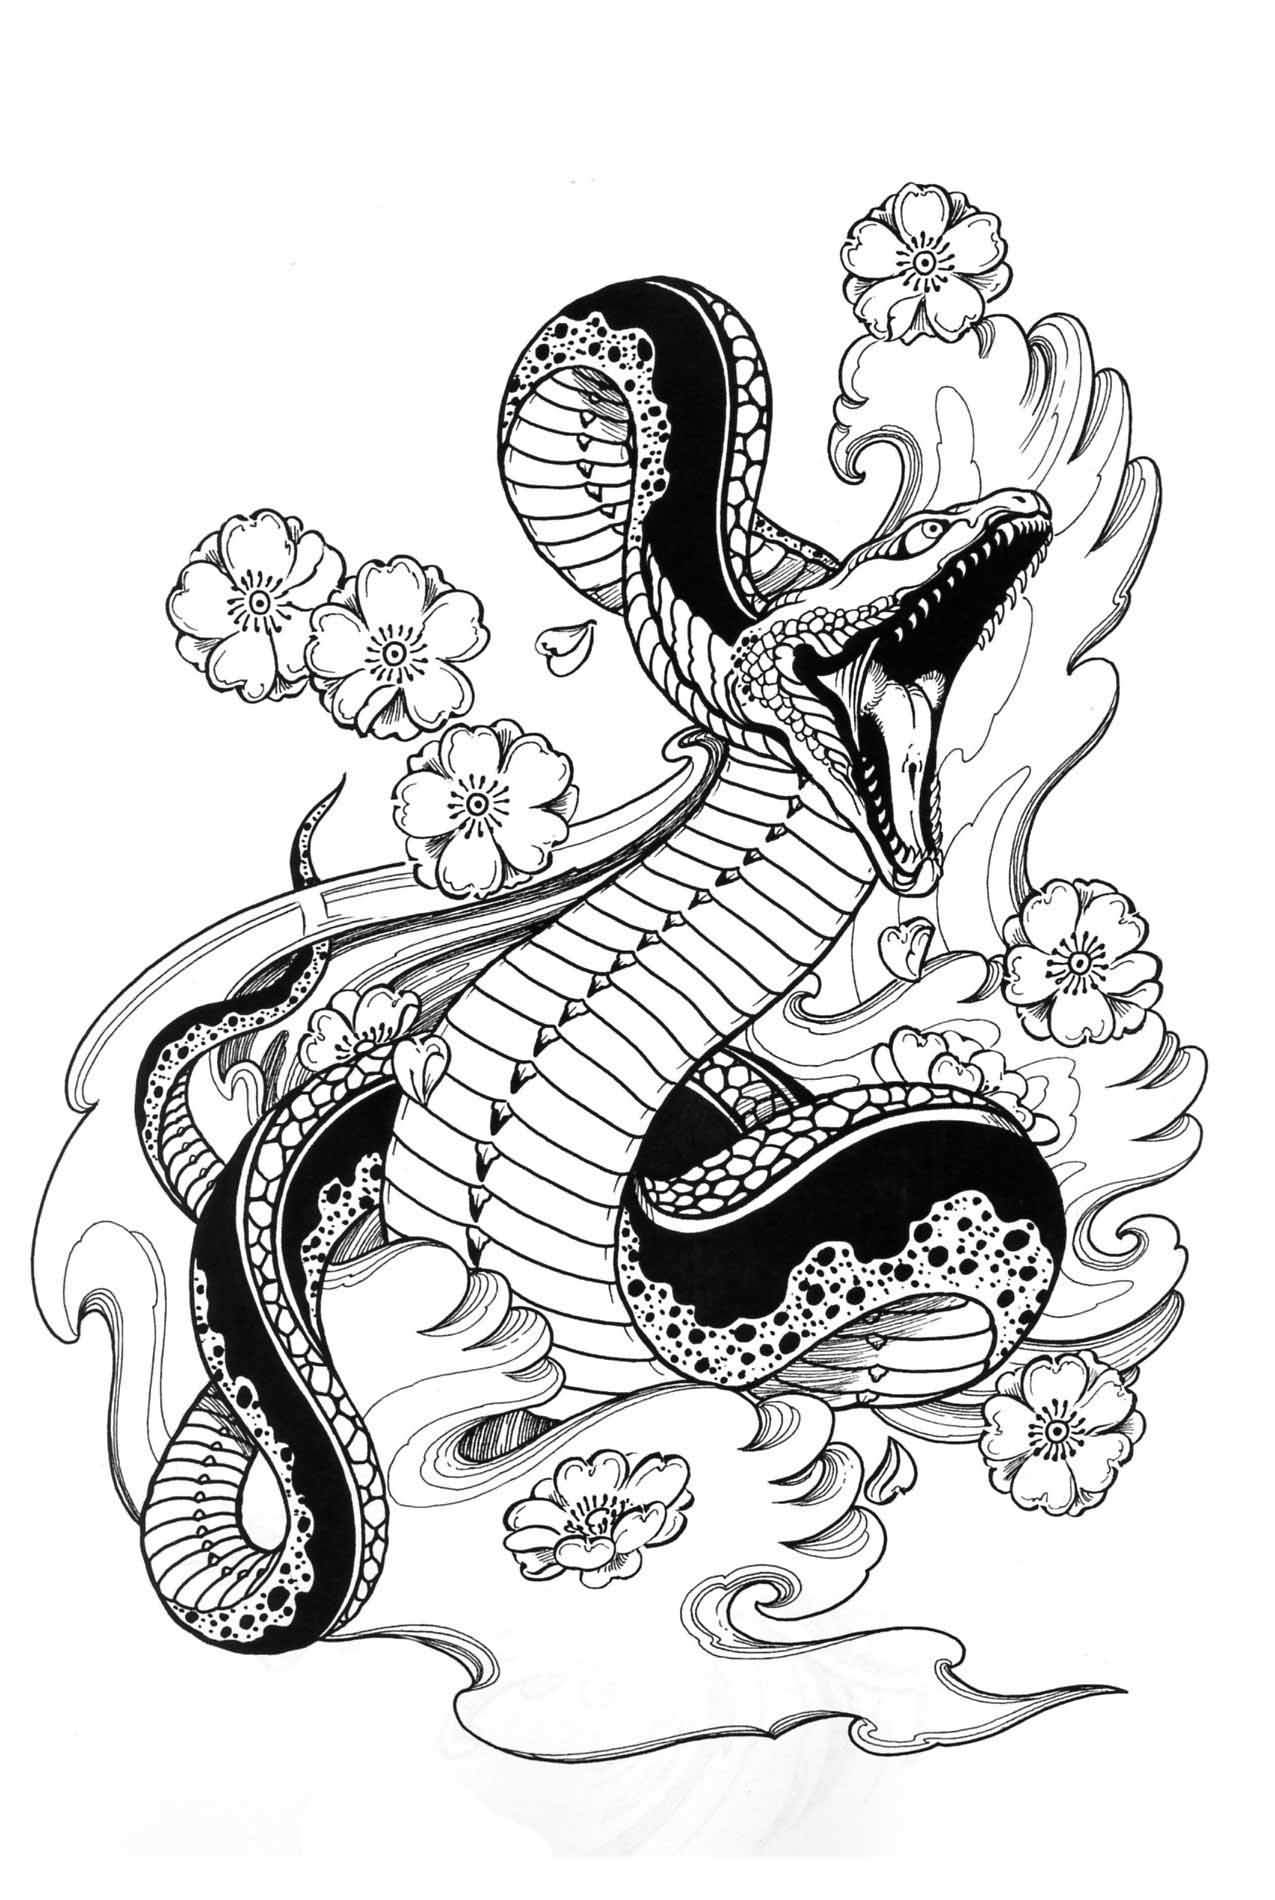 1275x1900 Japanese Snake Tattoos Collection